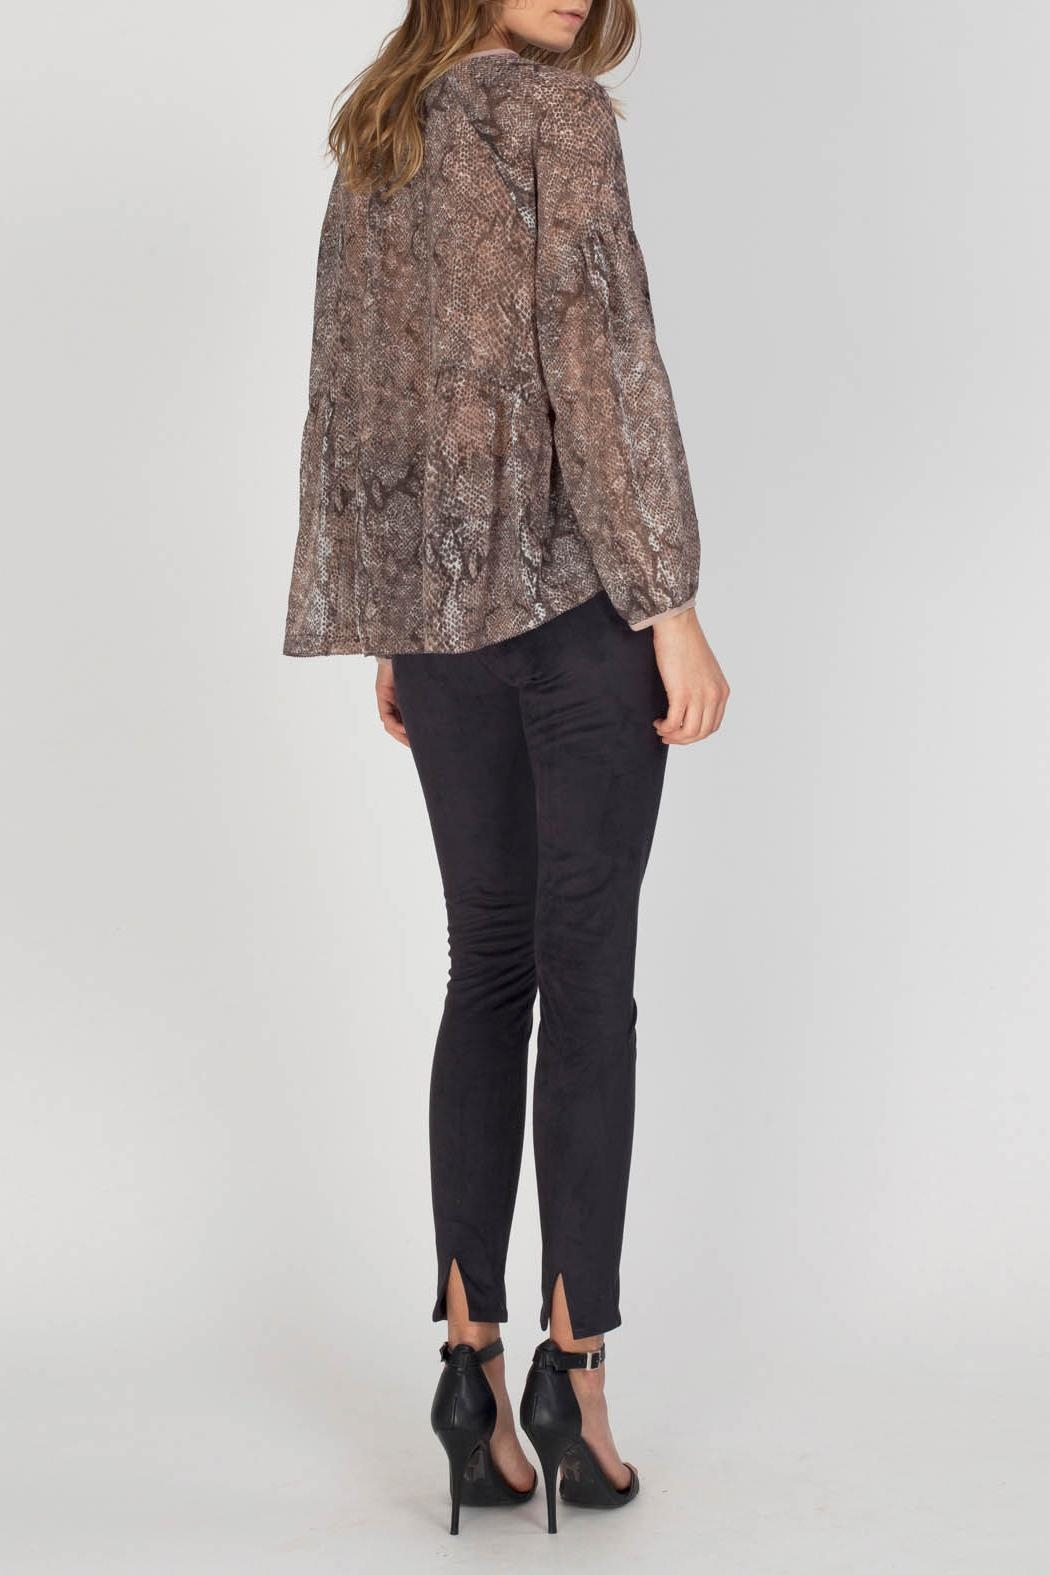 Gentle Fawn Maisie Chiffon Blouse - Side Cropped Image